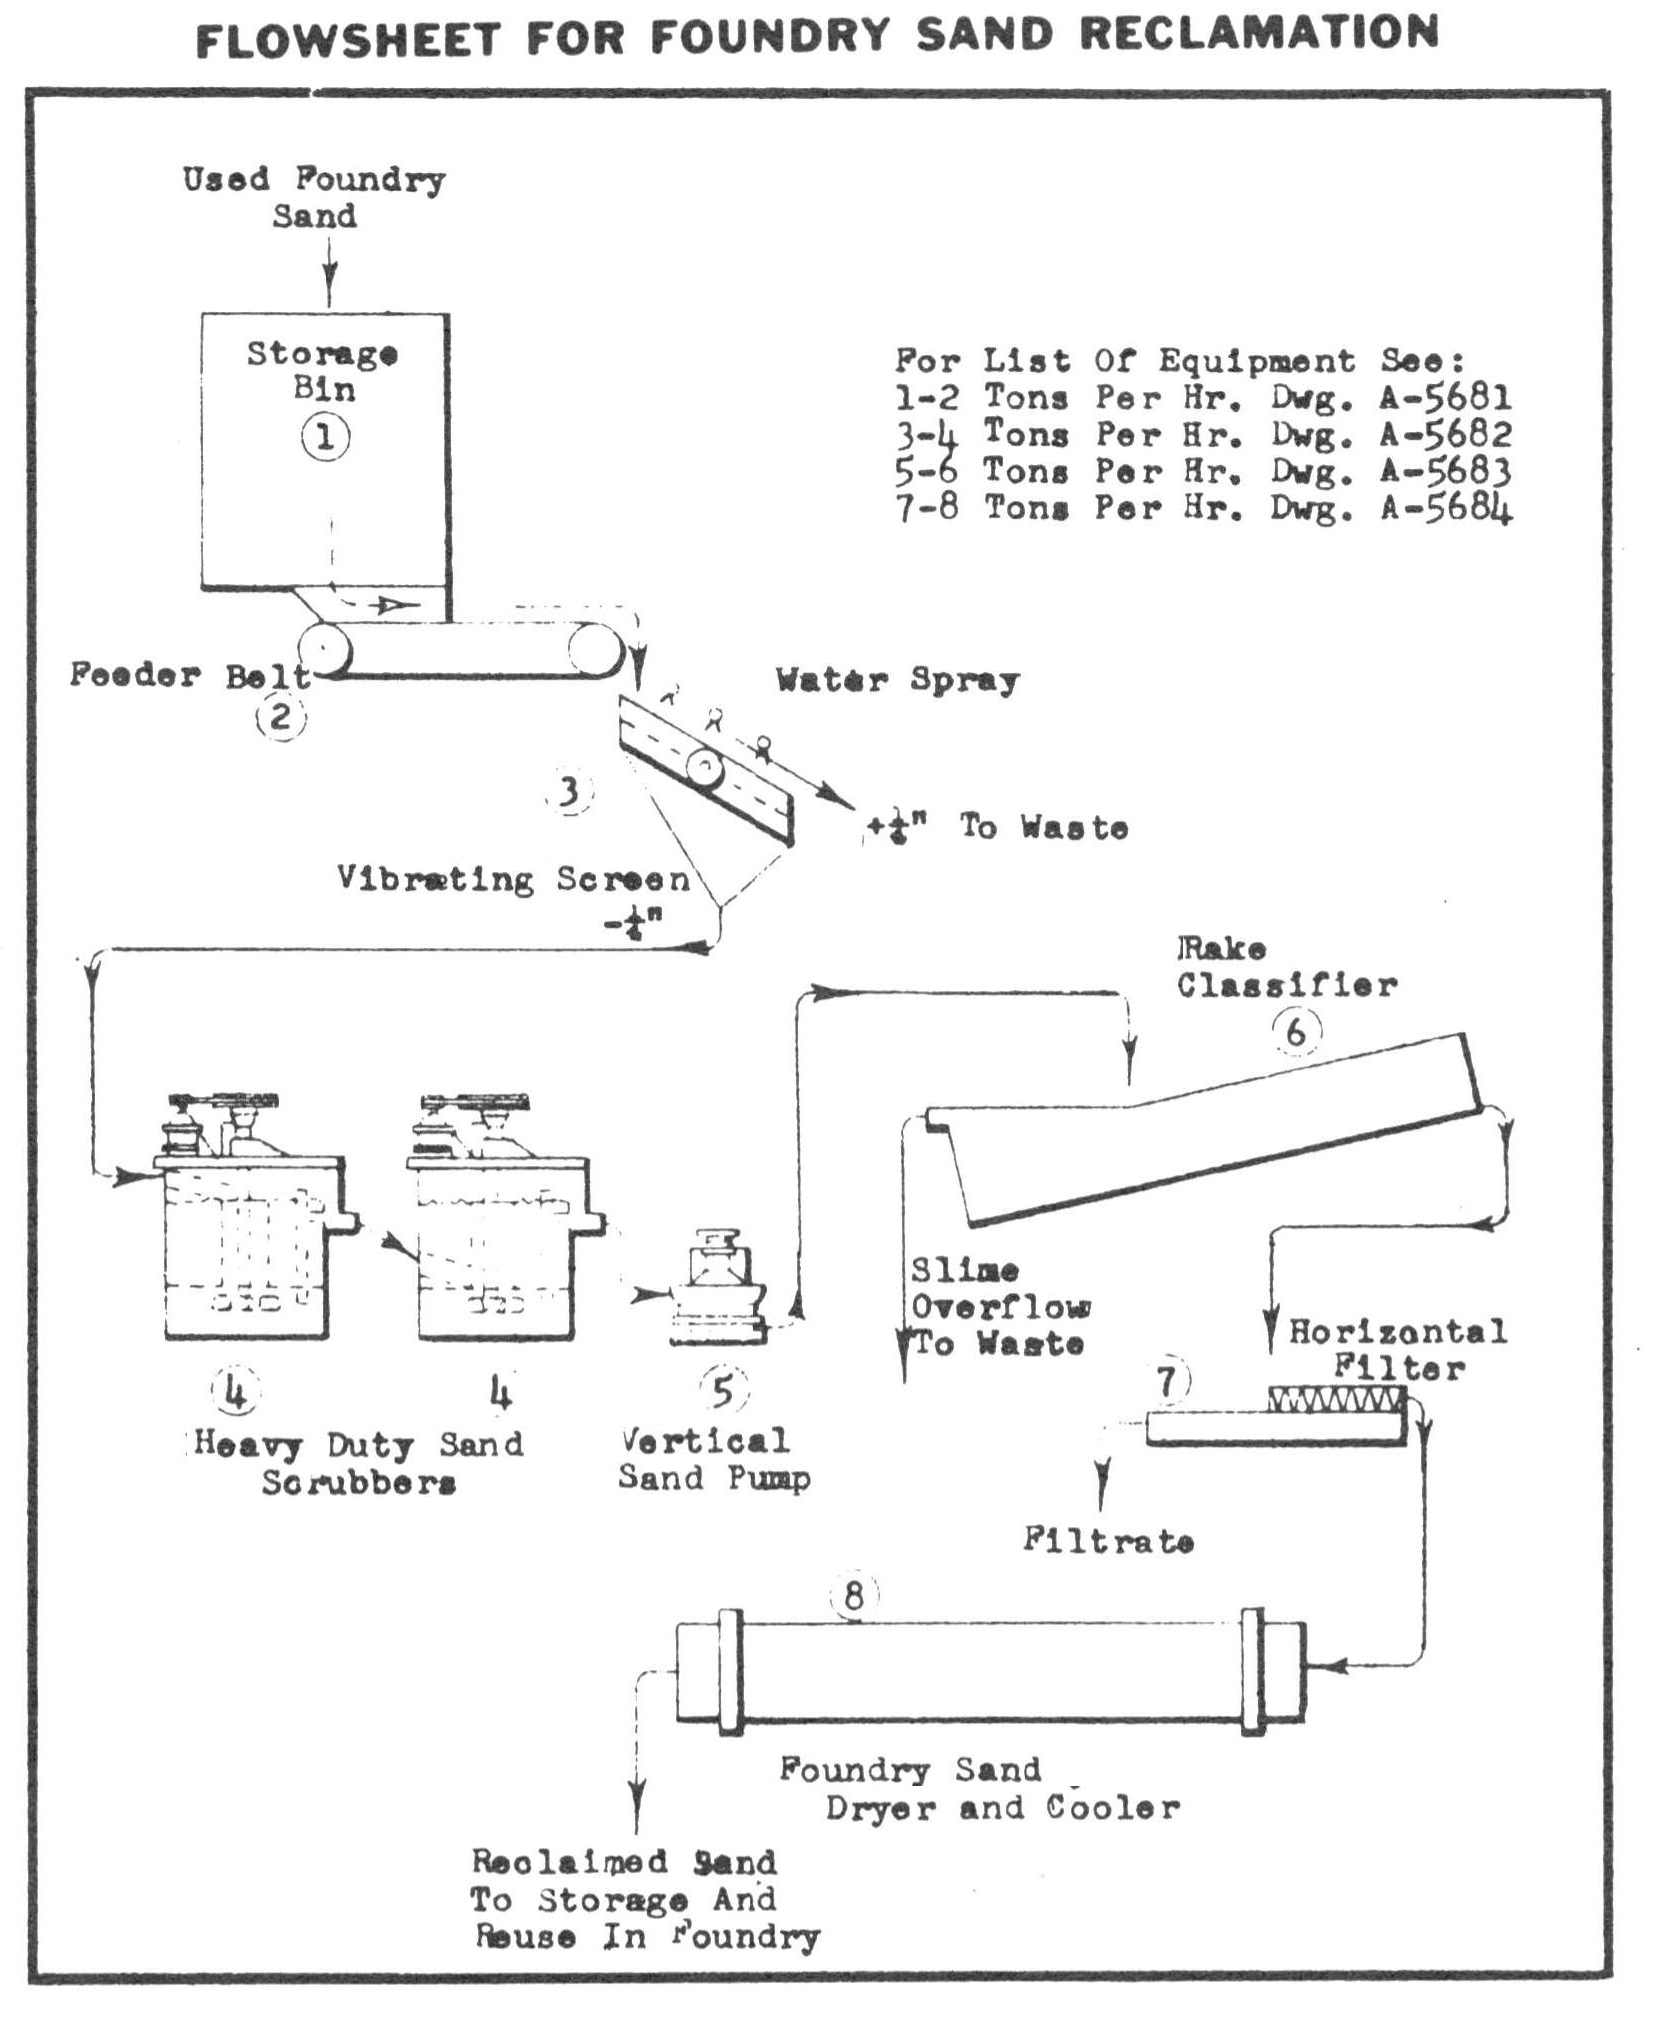 Process Flowsheet to Reclaim Foundry Sand